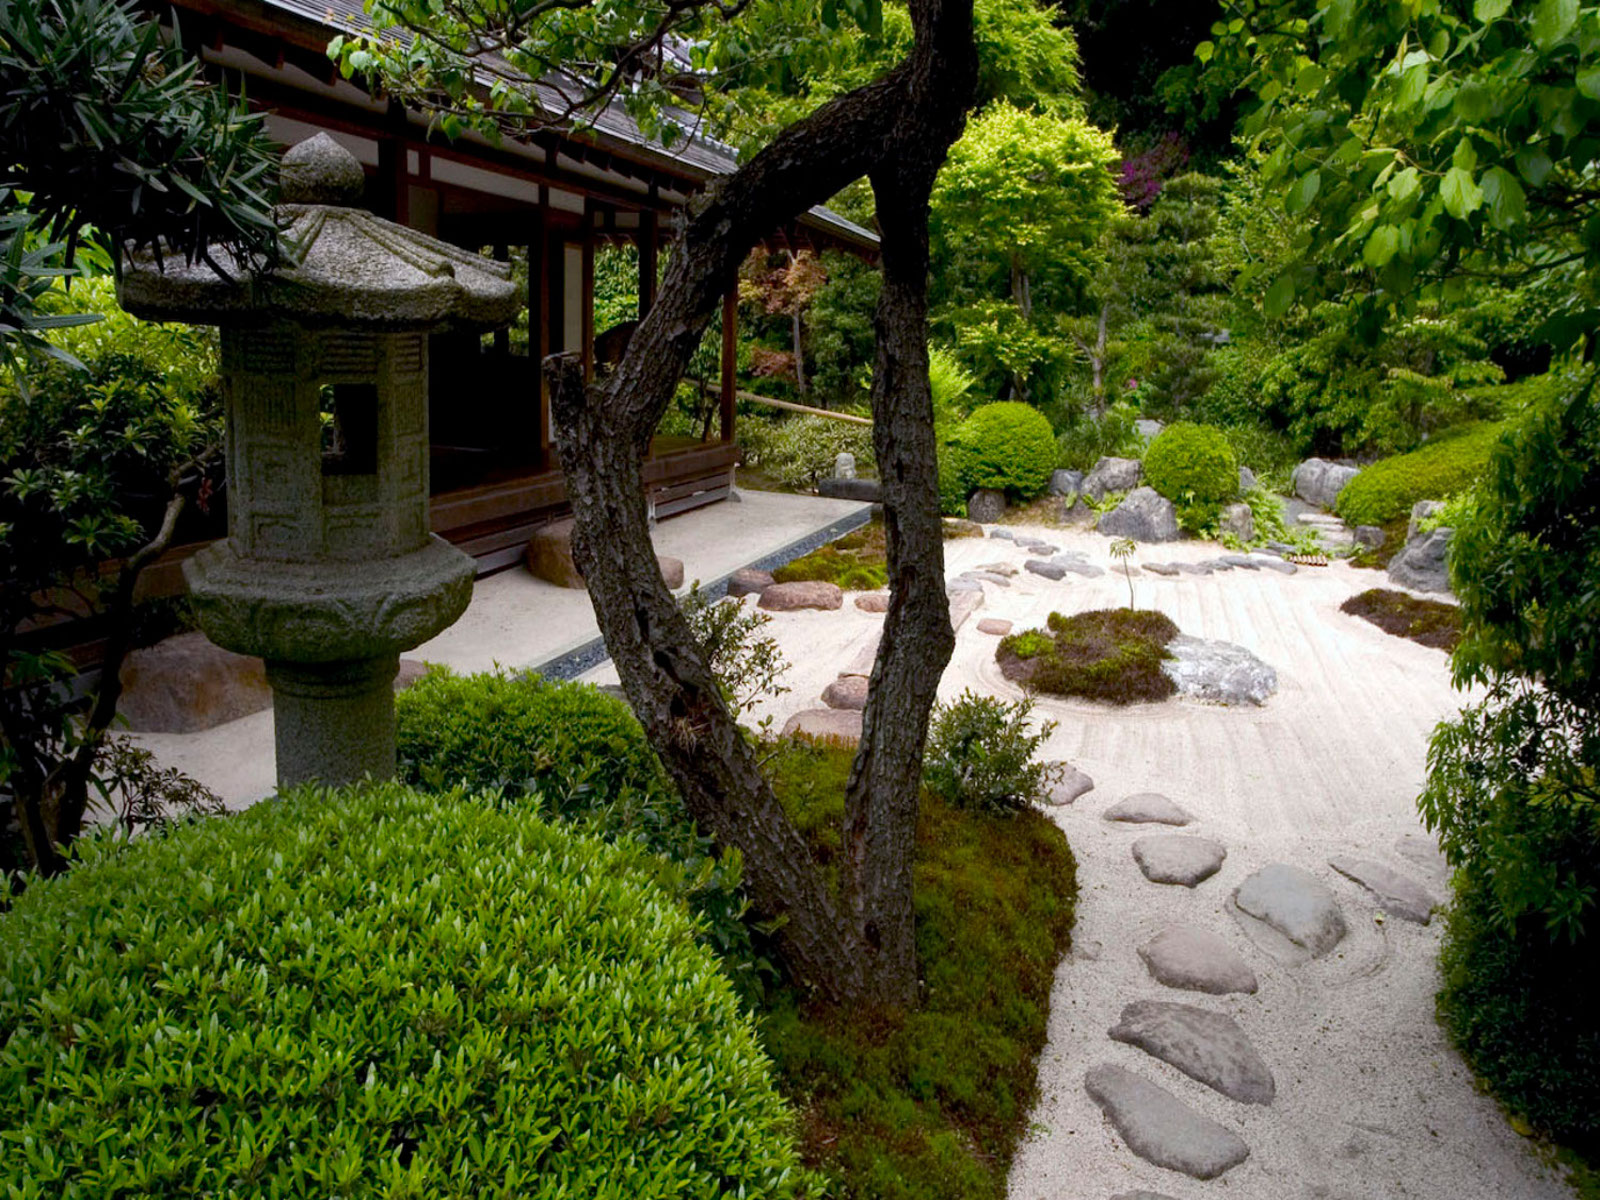 Zen garden wallpaper hd wallpaper pictures gallery for Japanese garden designs